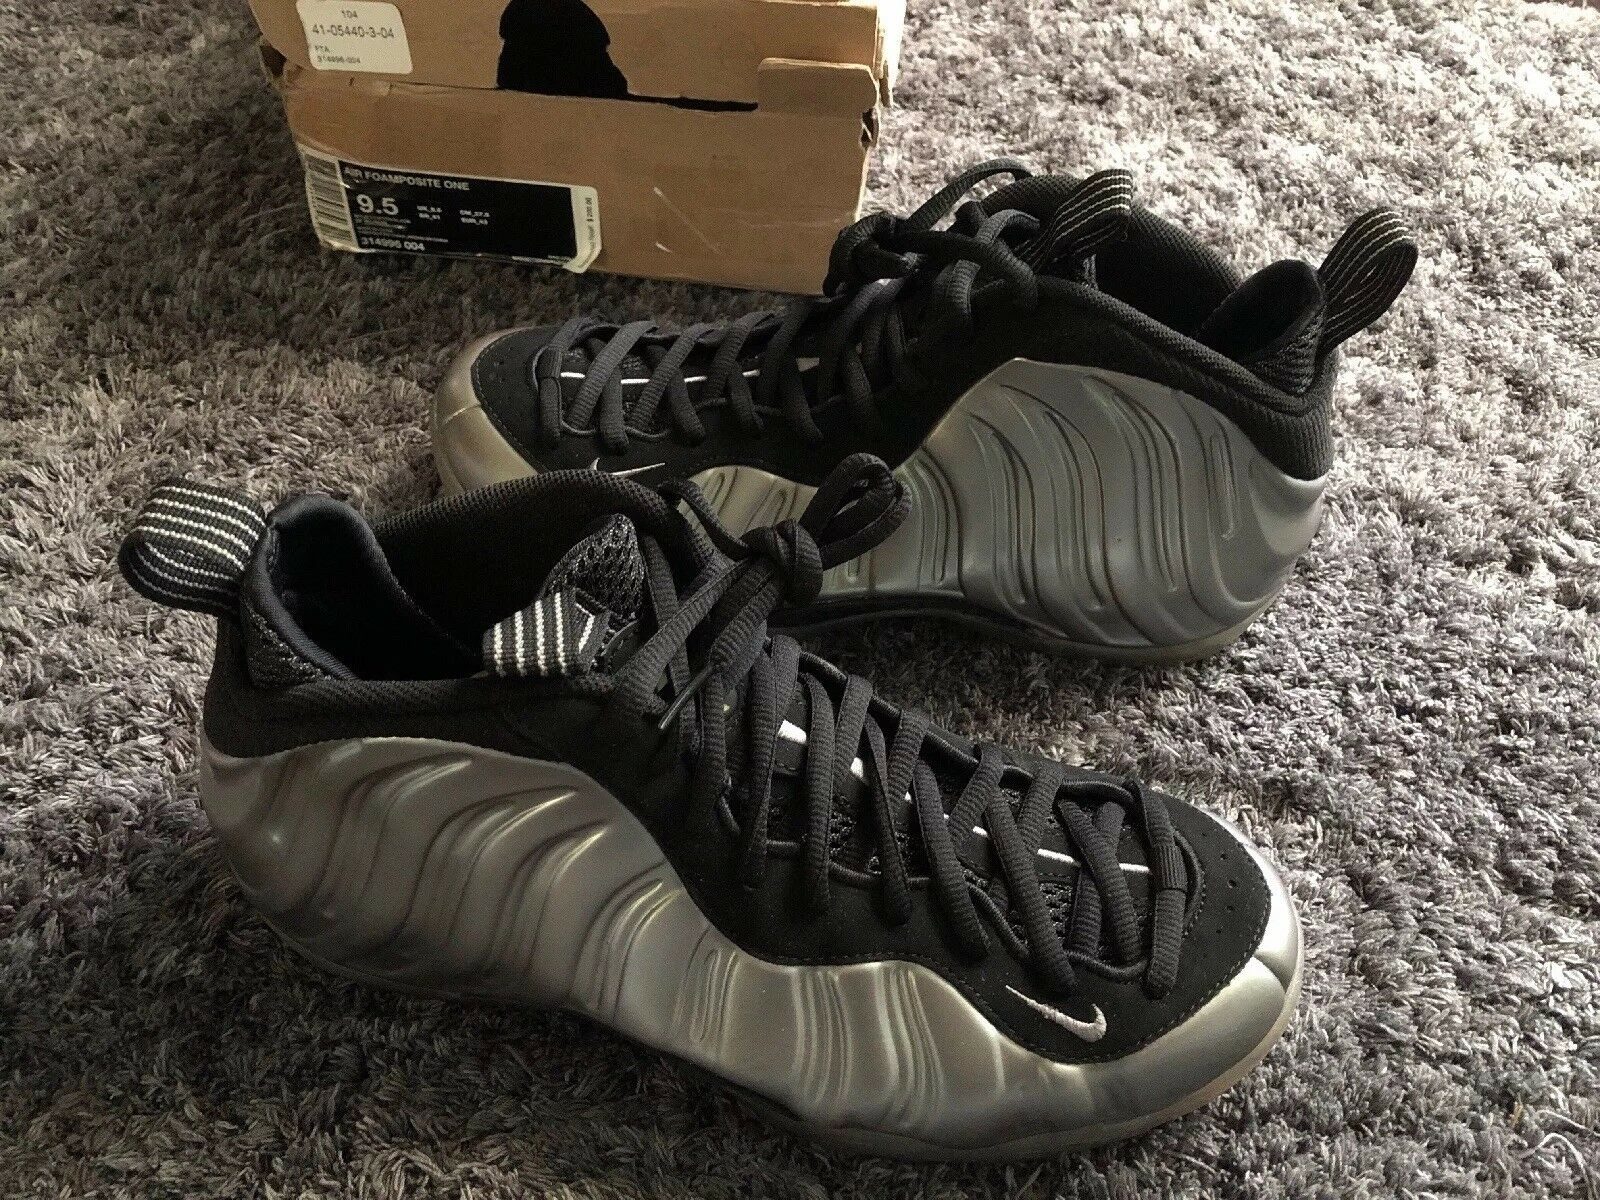 Nike AIR FOAMPOSITE ONE METALLIC PEWTER BLACK Size 9.5 314996-004